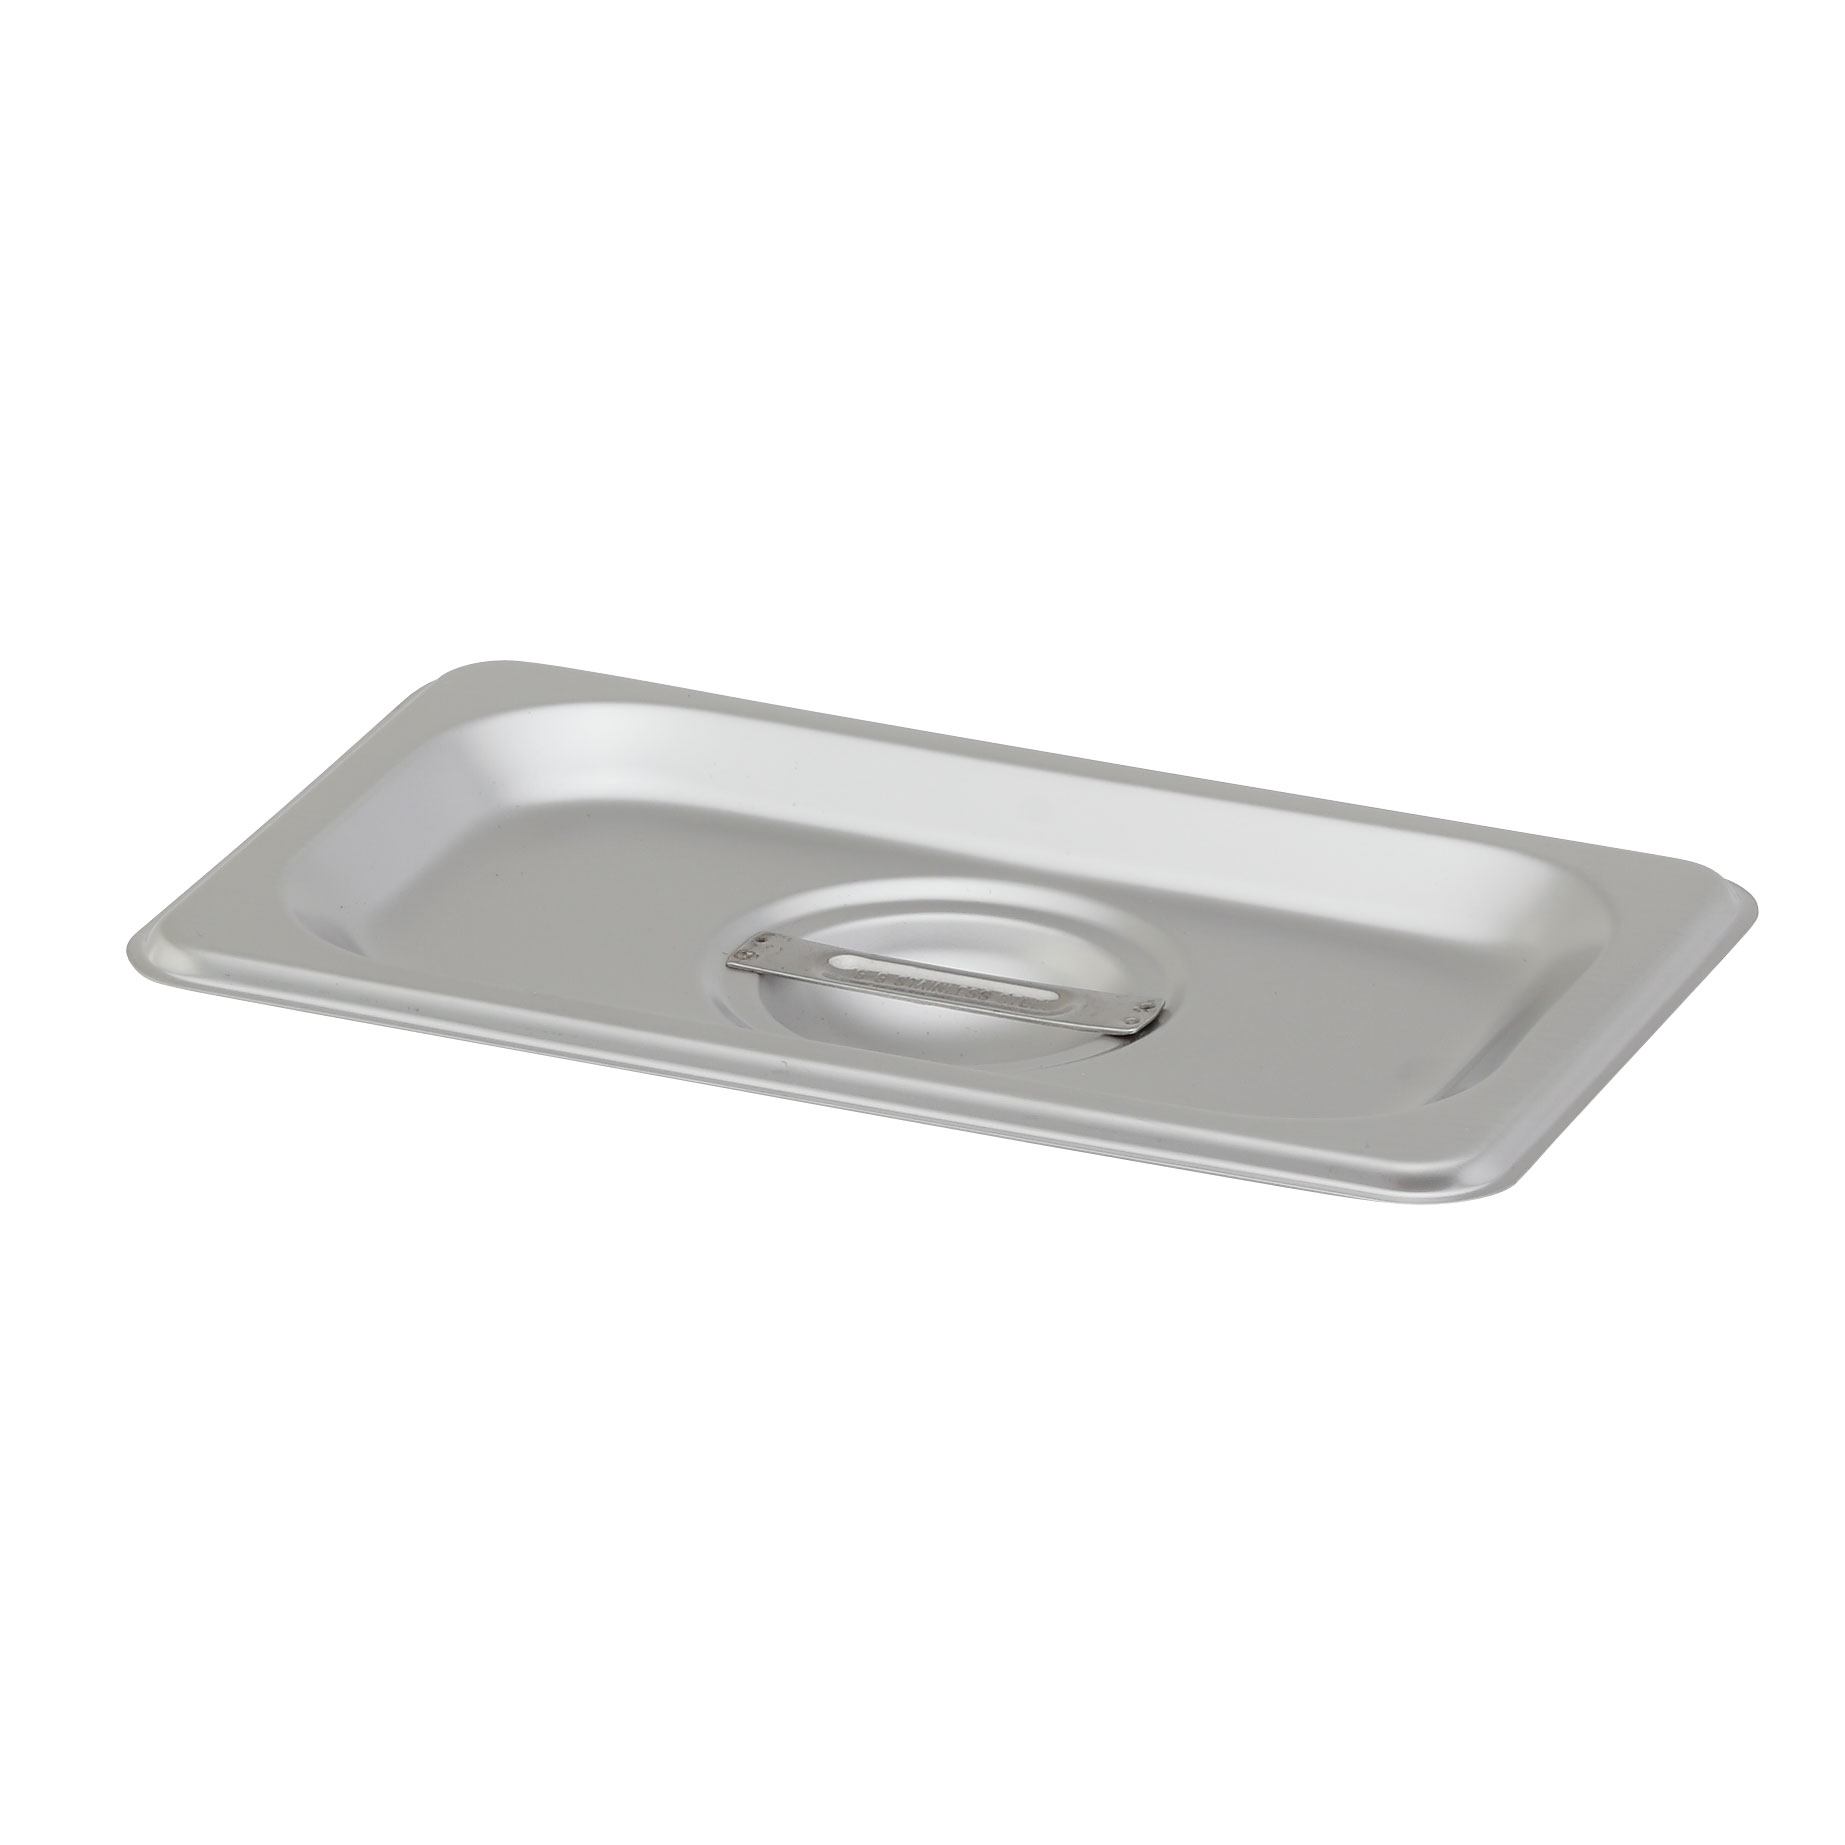 Royal Industries ROY STP 1900 1 steam table pan cover, stainless steel